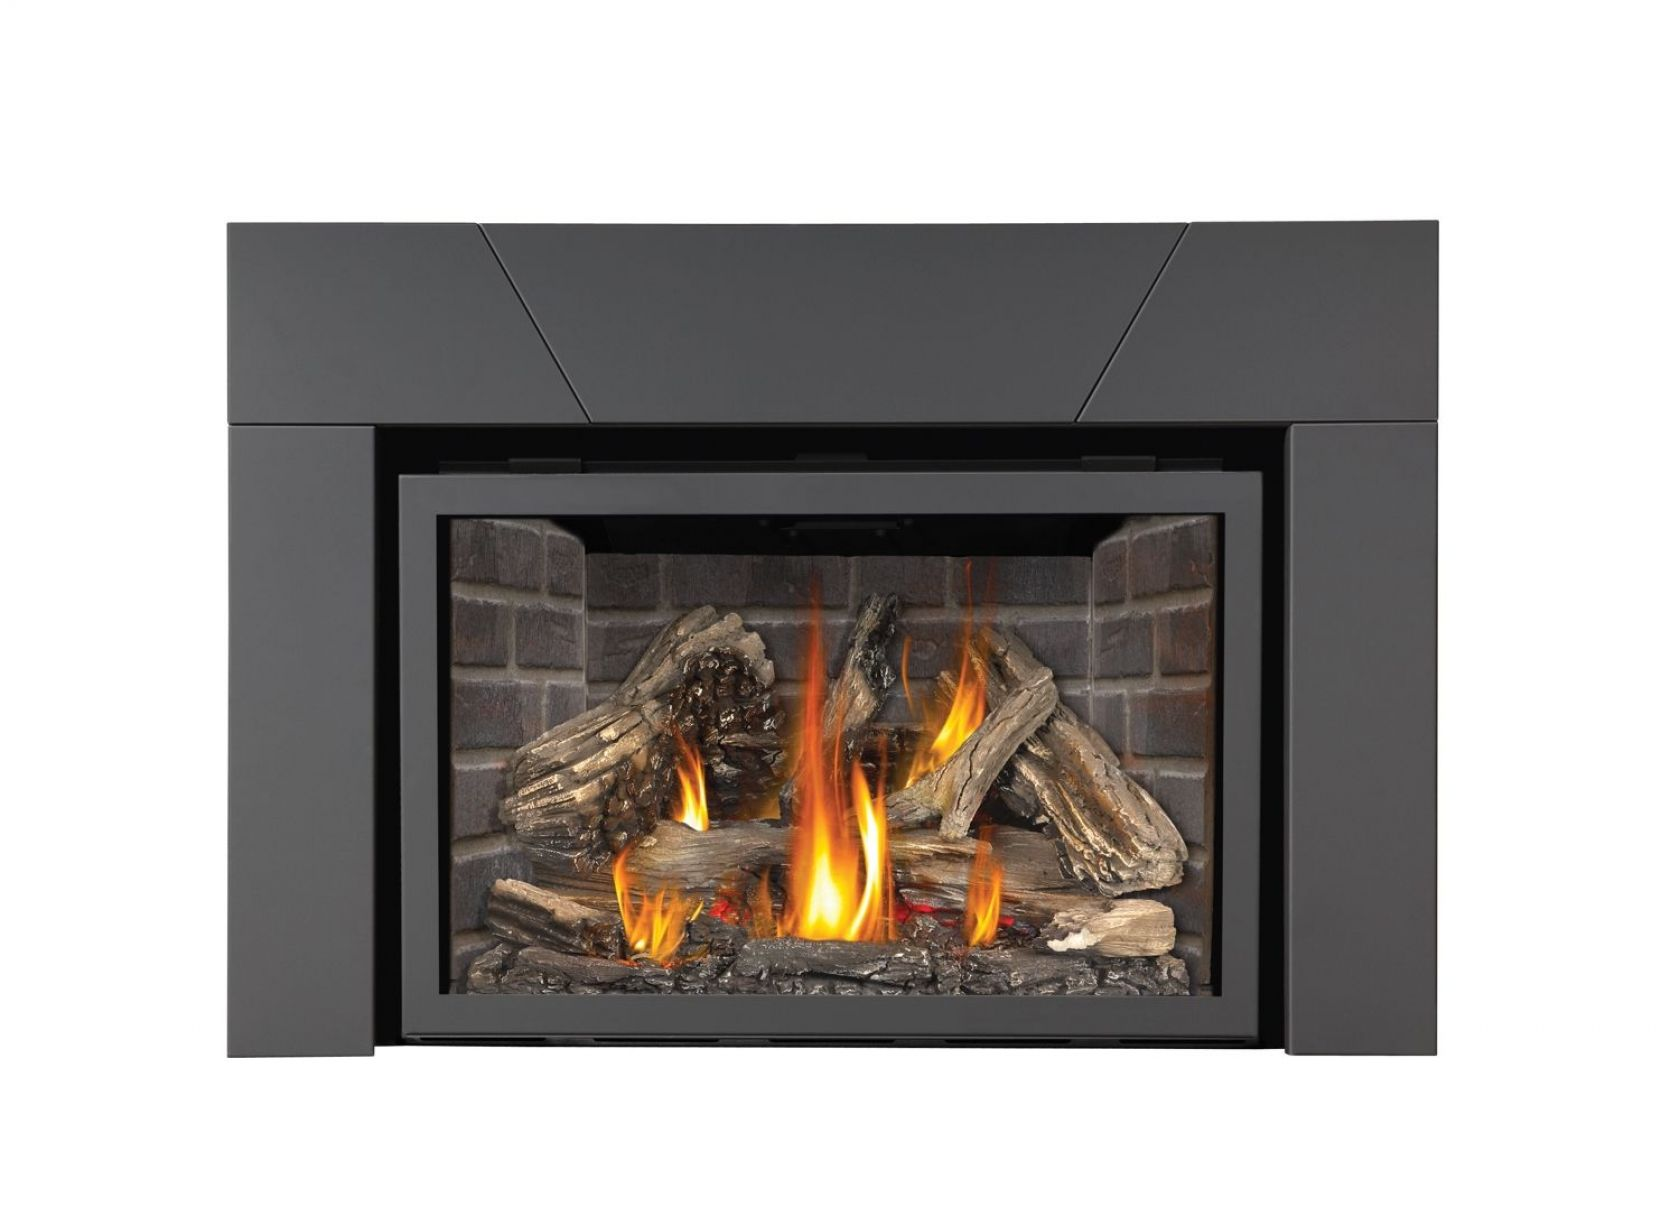 Standard Gas Fireplace Insert Dimensions Napoleon Infrared Xir4 Direct Vent Gas Insert